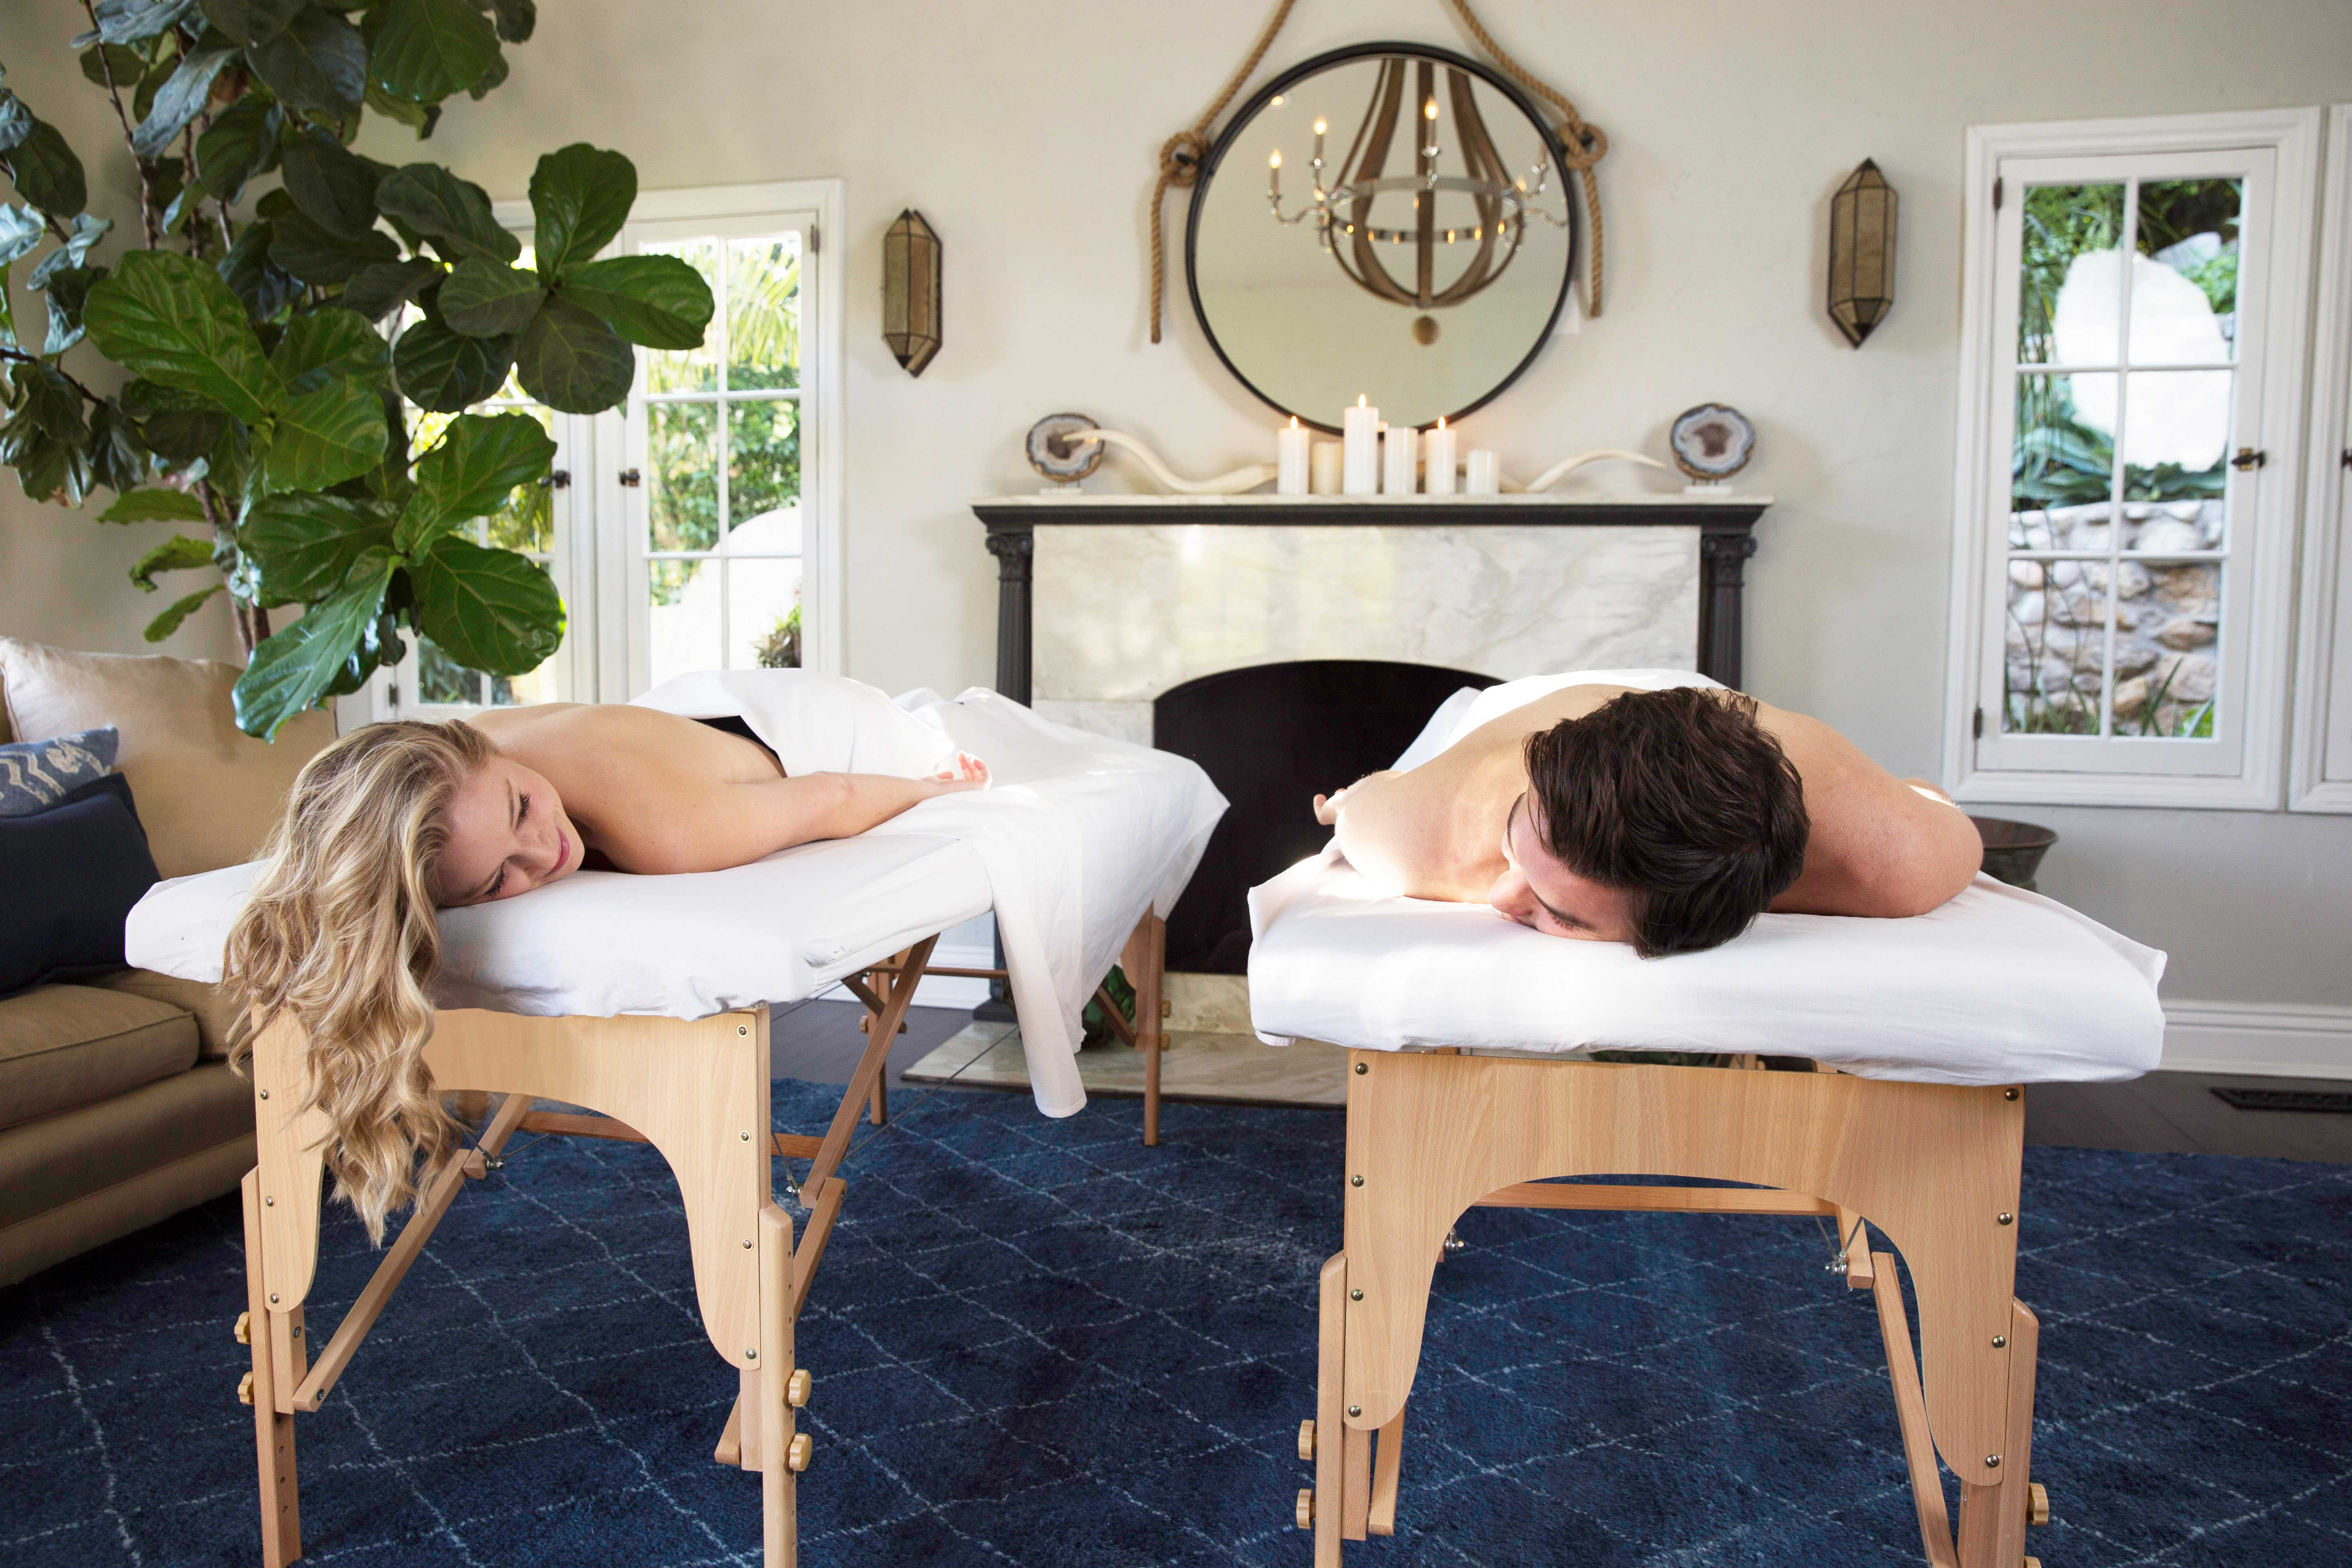 Zeel couples massage in home therapist spa day gift idea